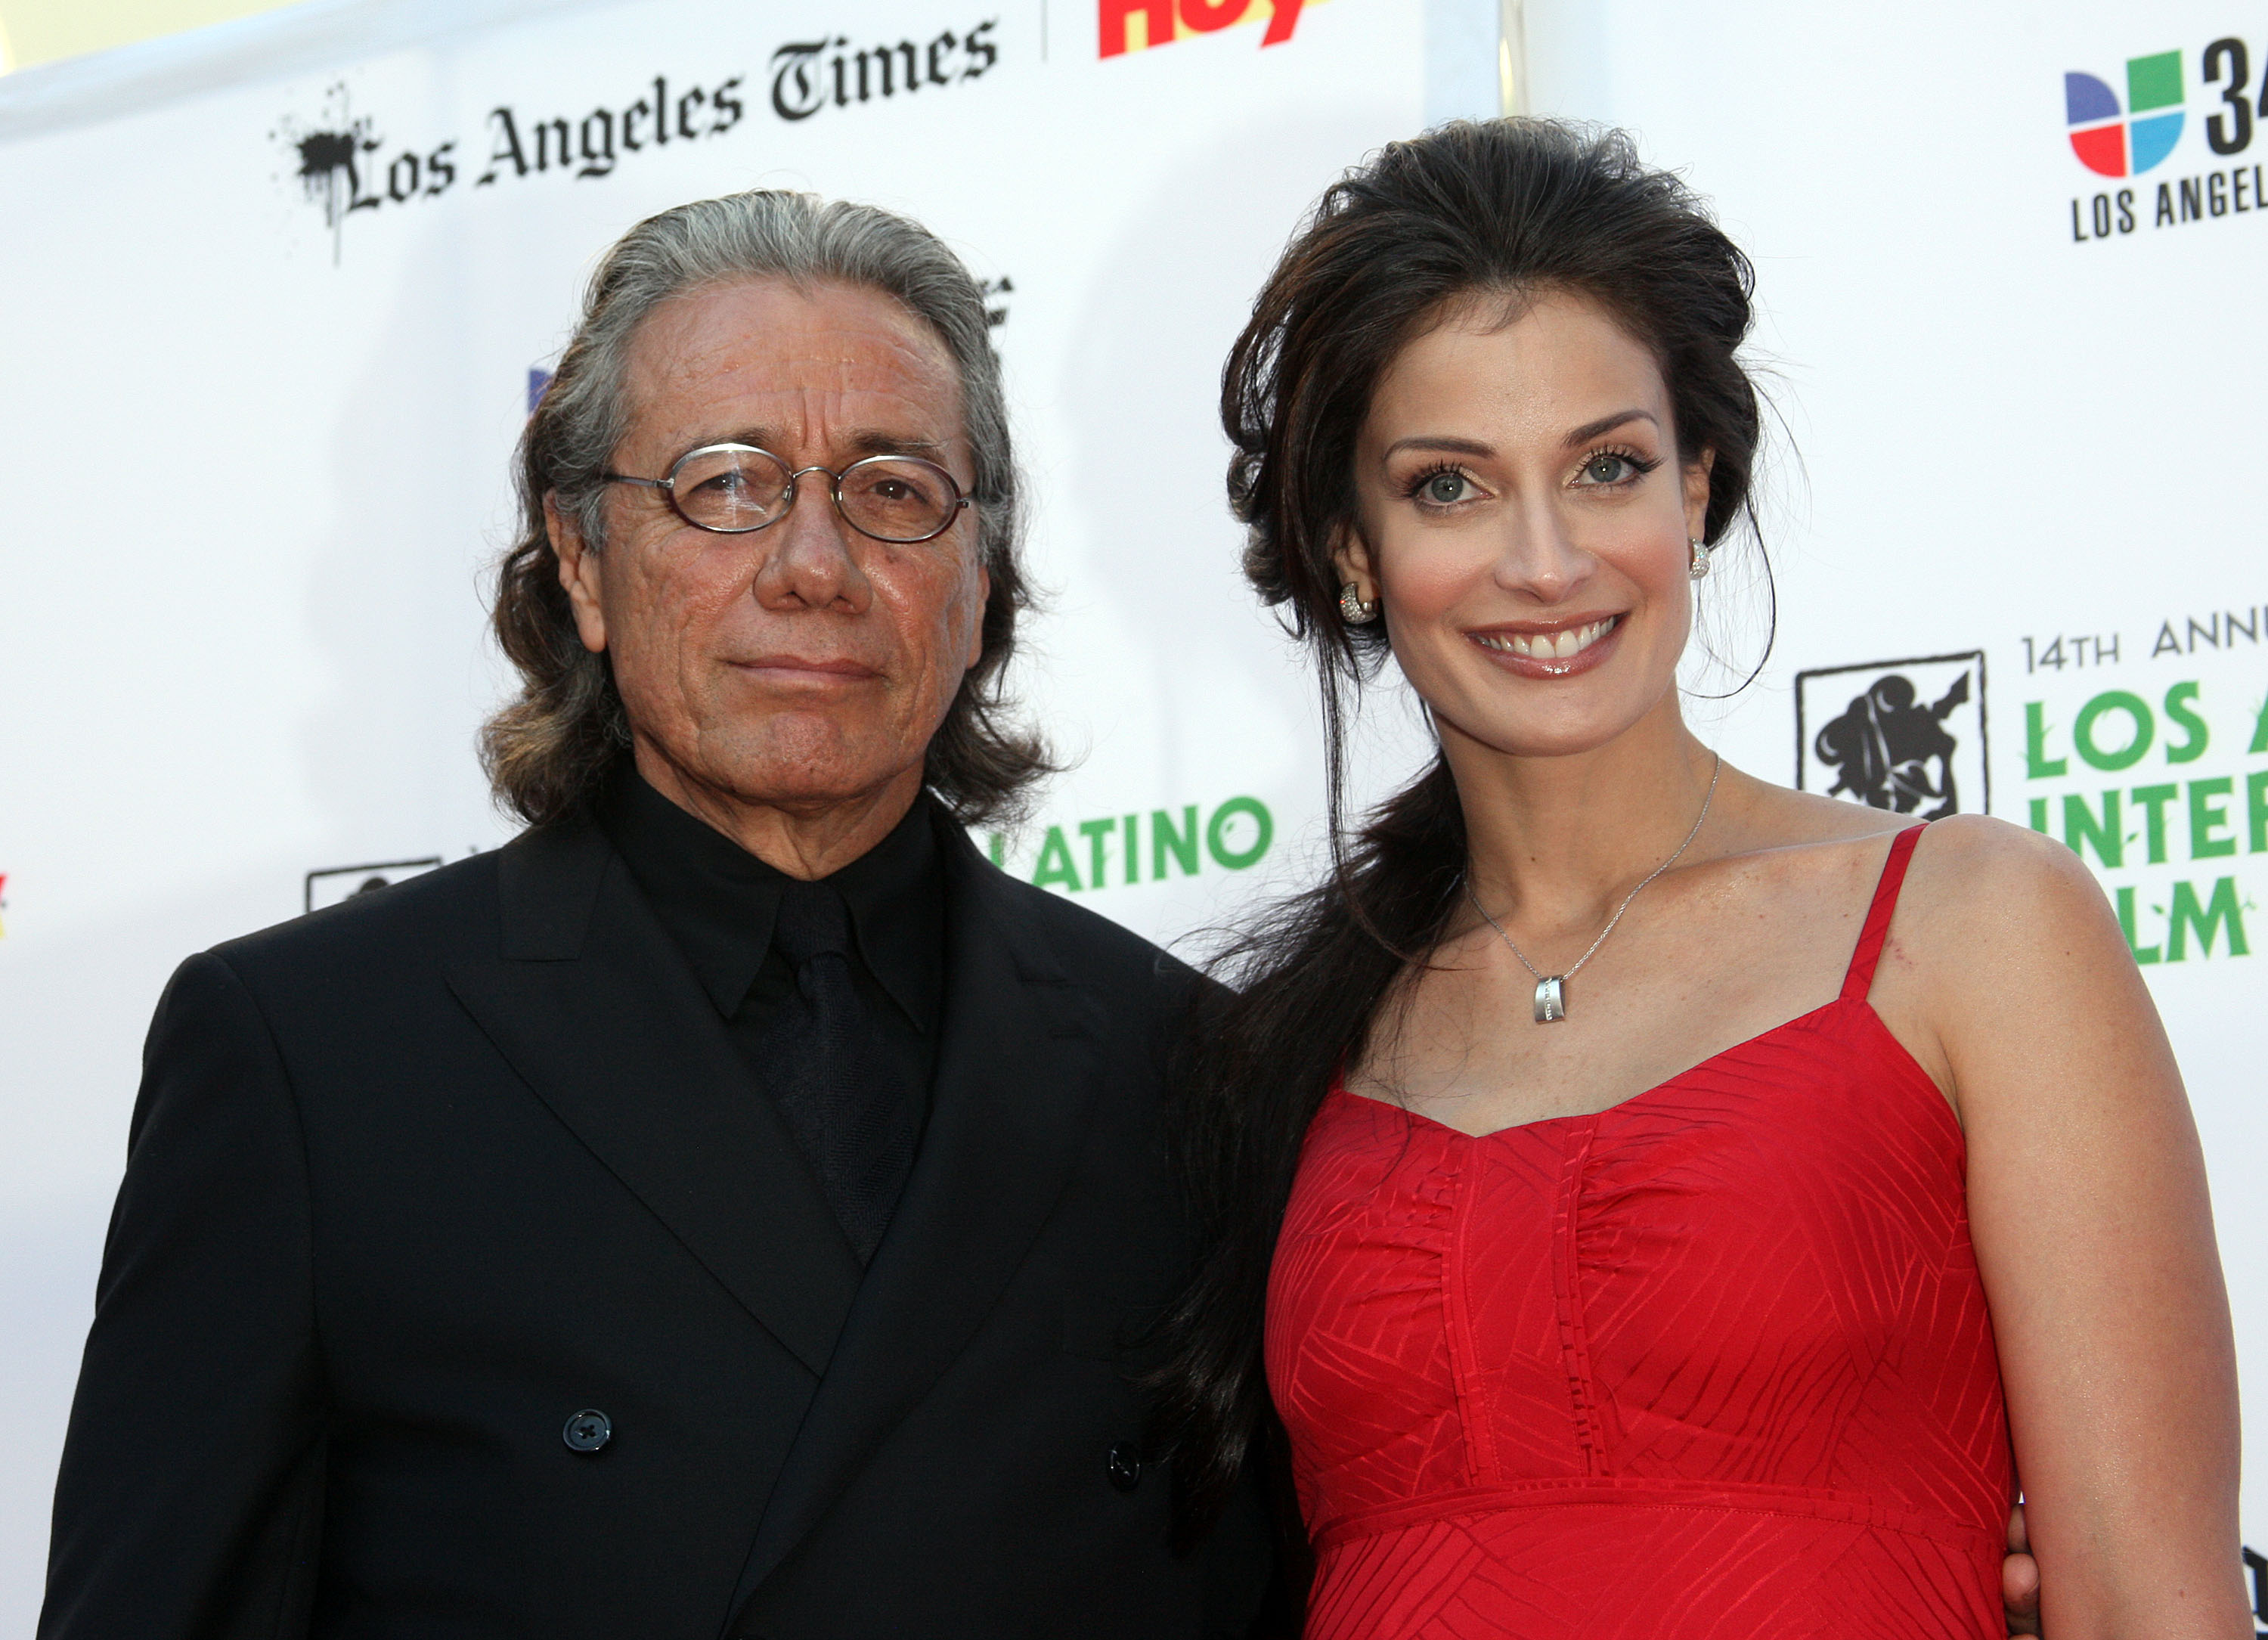 After 5 Years Without One, Los Angeles' Latino Film Festival Comes Back